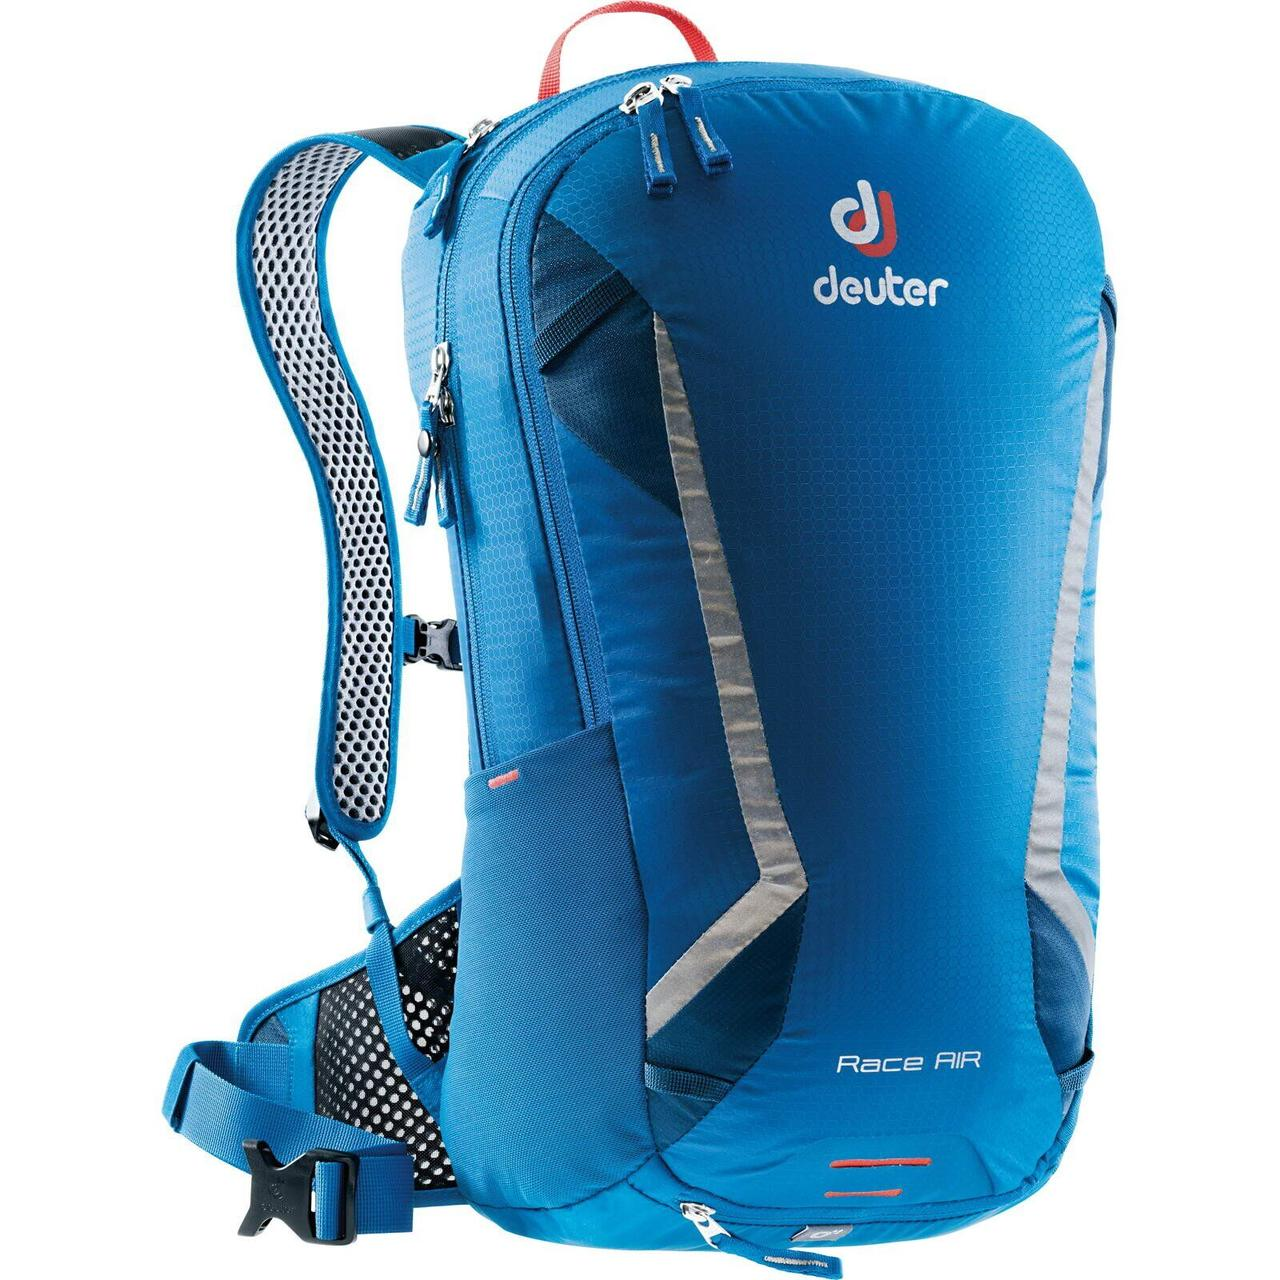 Велорюкзак Deuter Race Air 10 bay-midnight (3207218 3100)